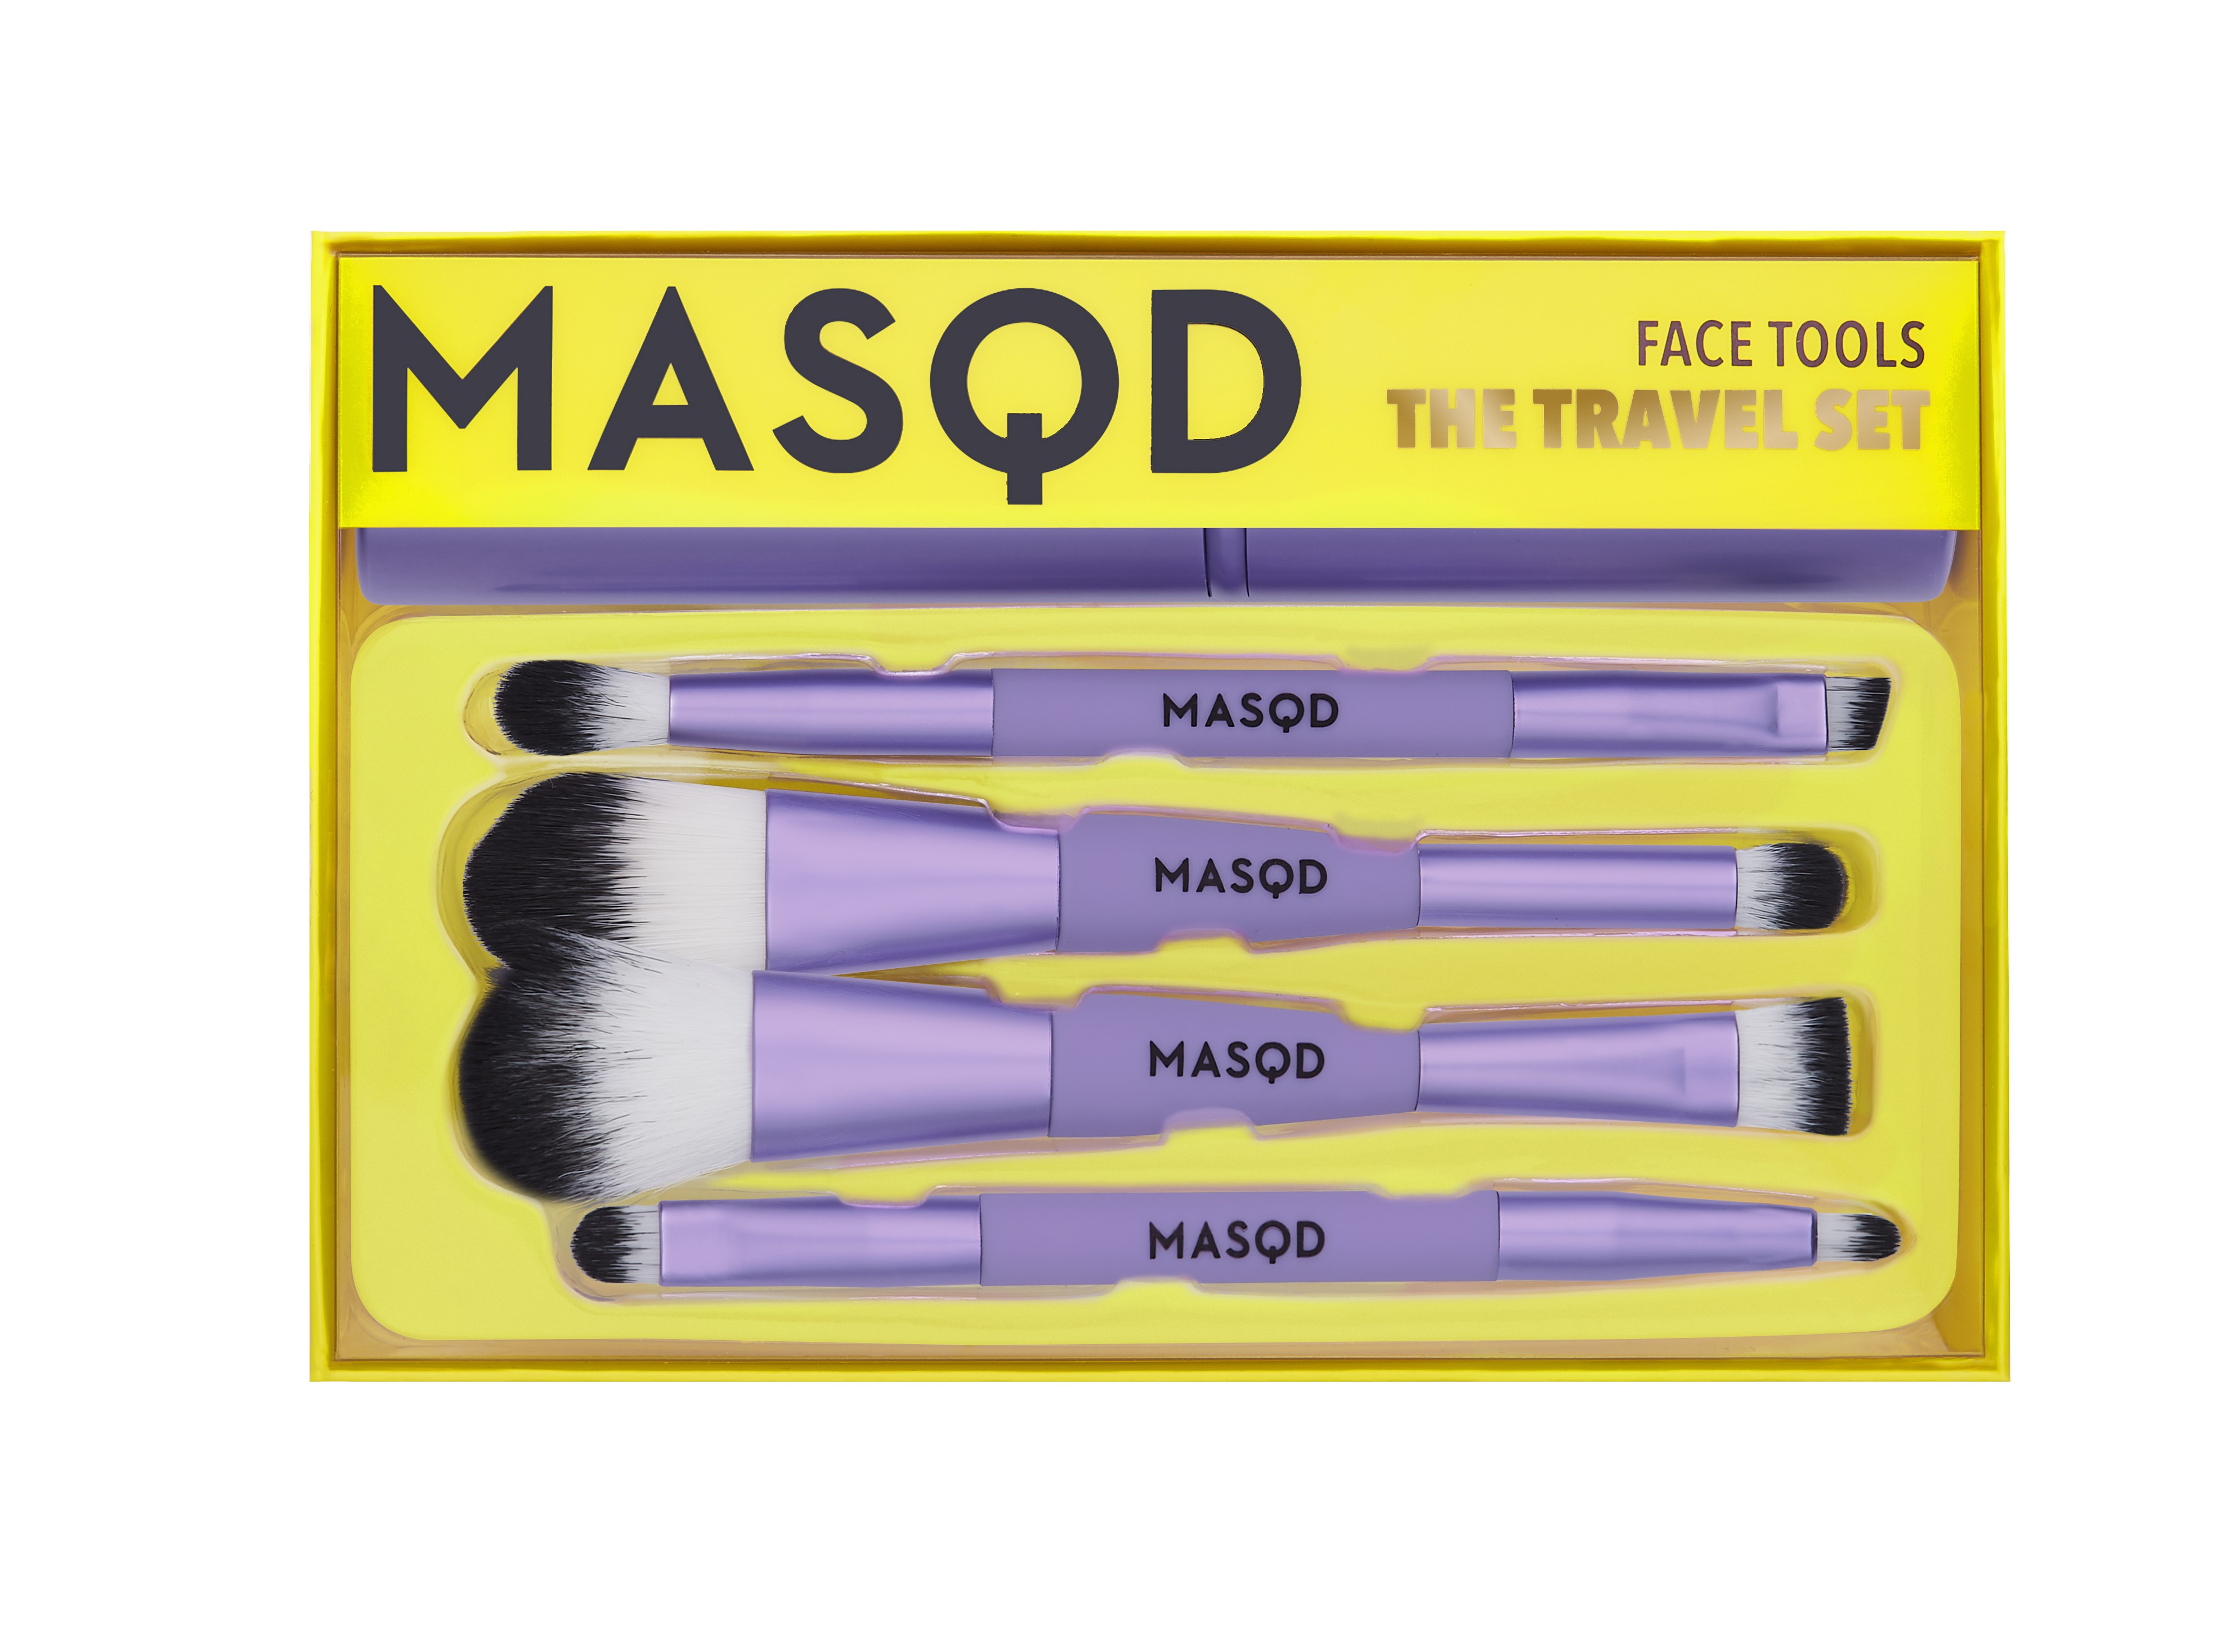 <b>NEW MASQD MAKEUP BRU...</b>